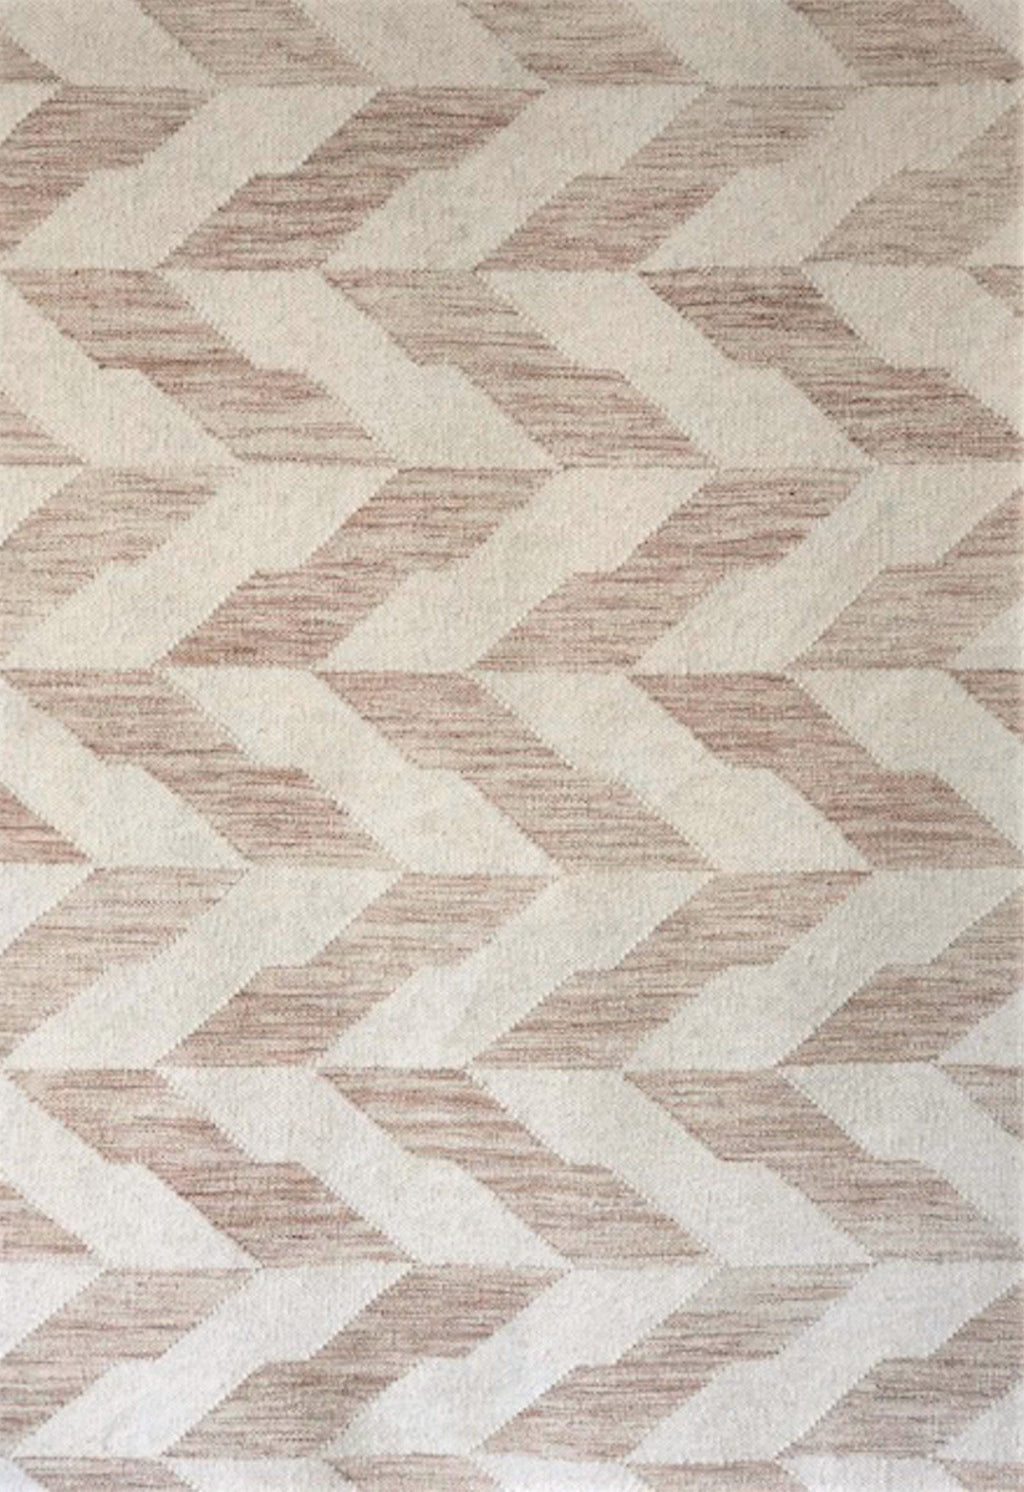 neutral geometric rug close up